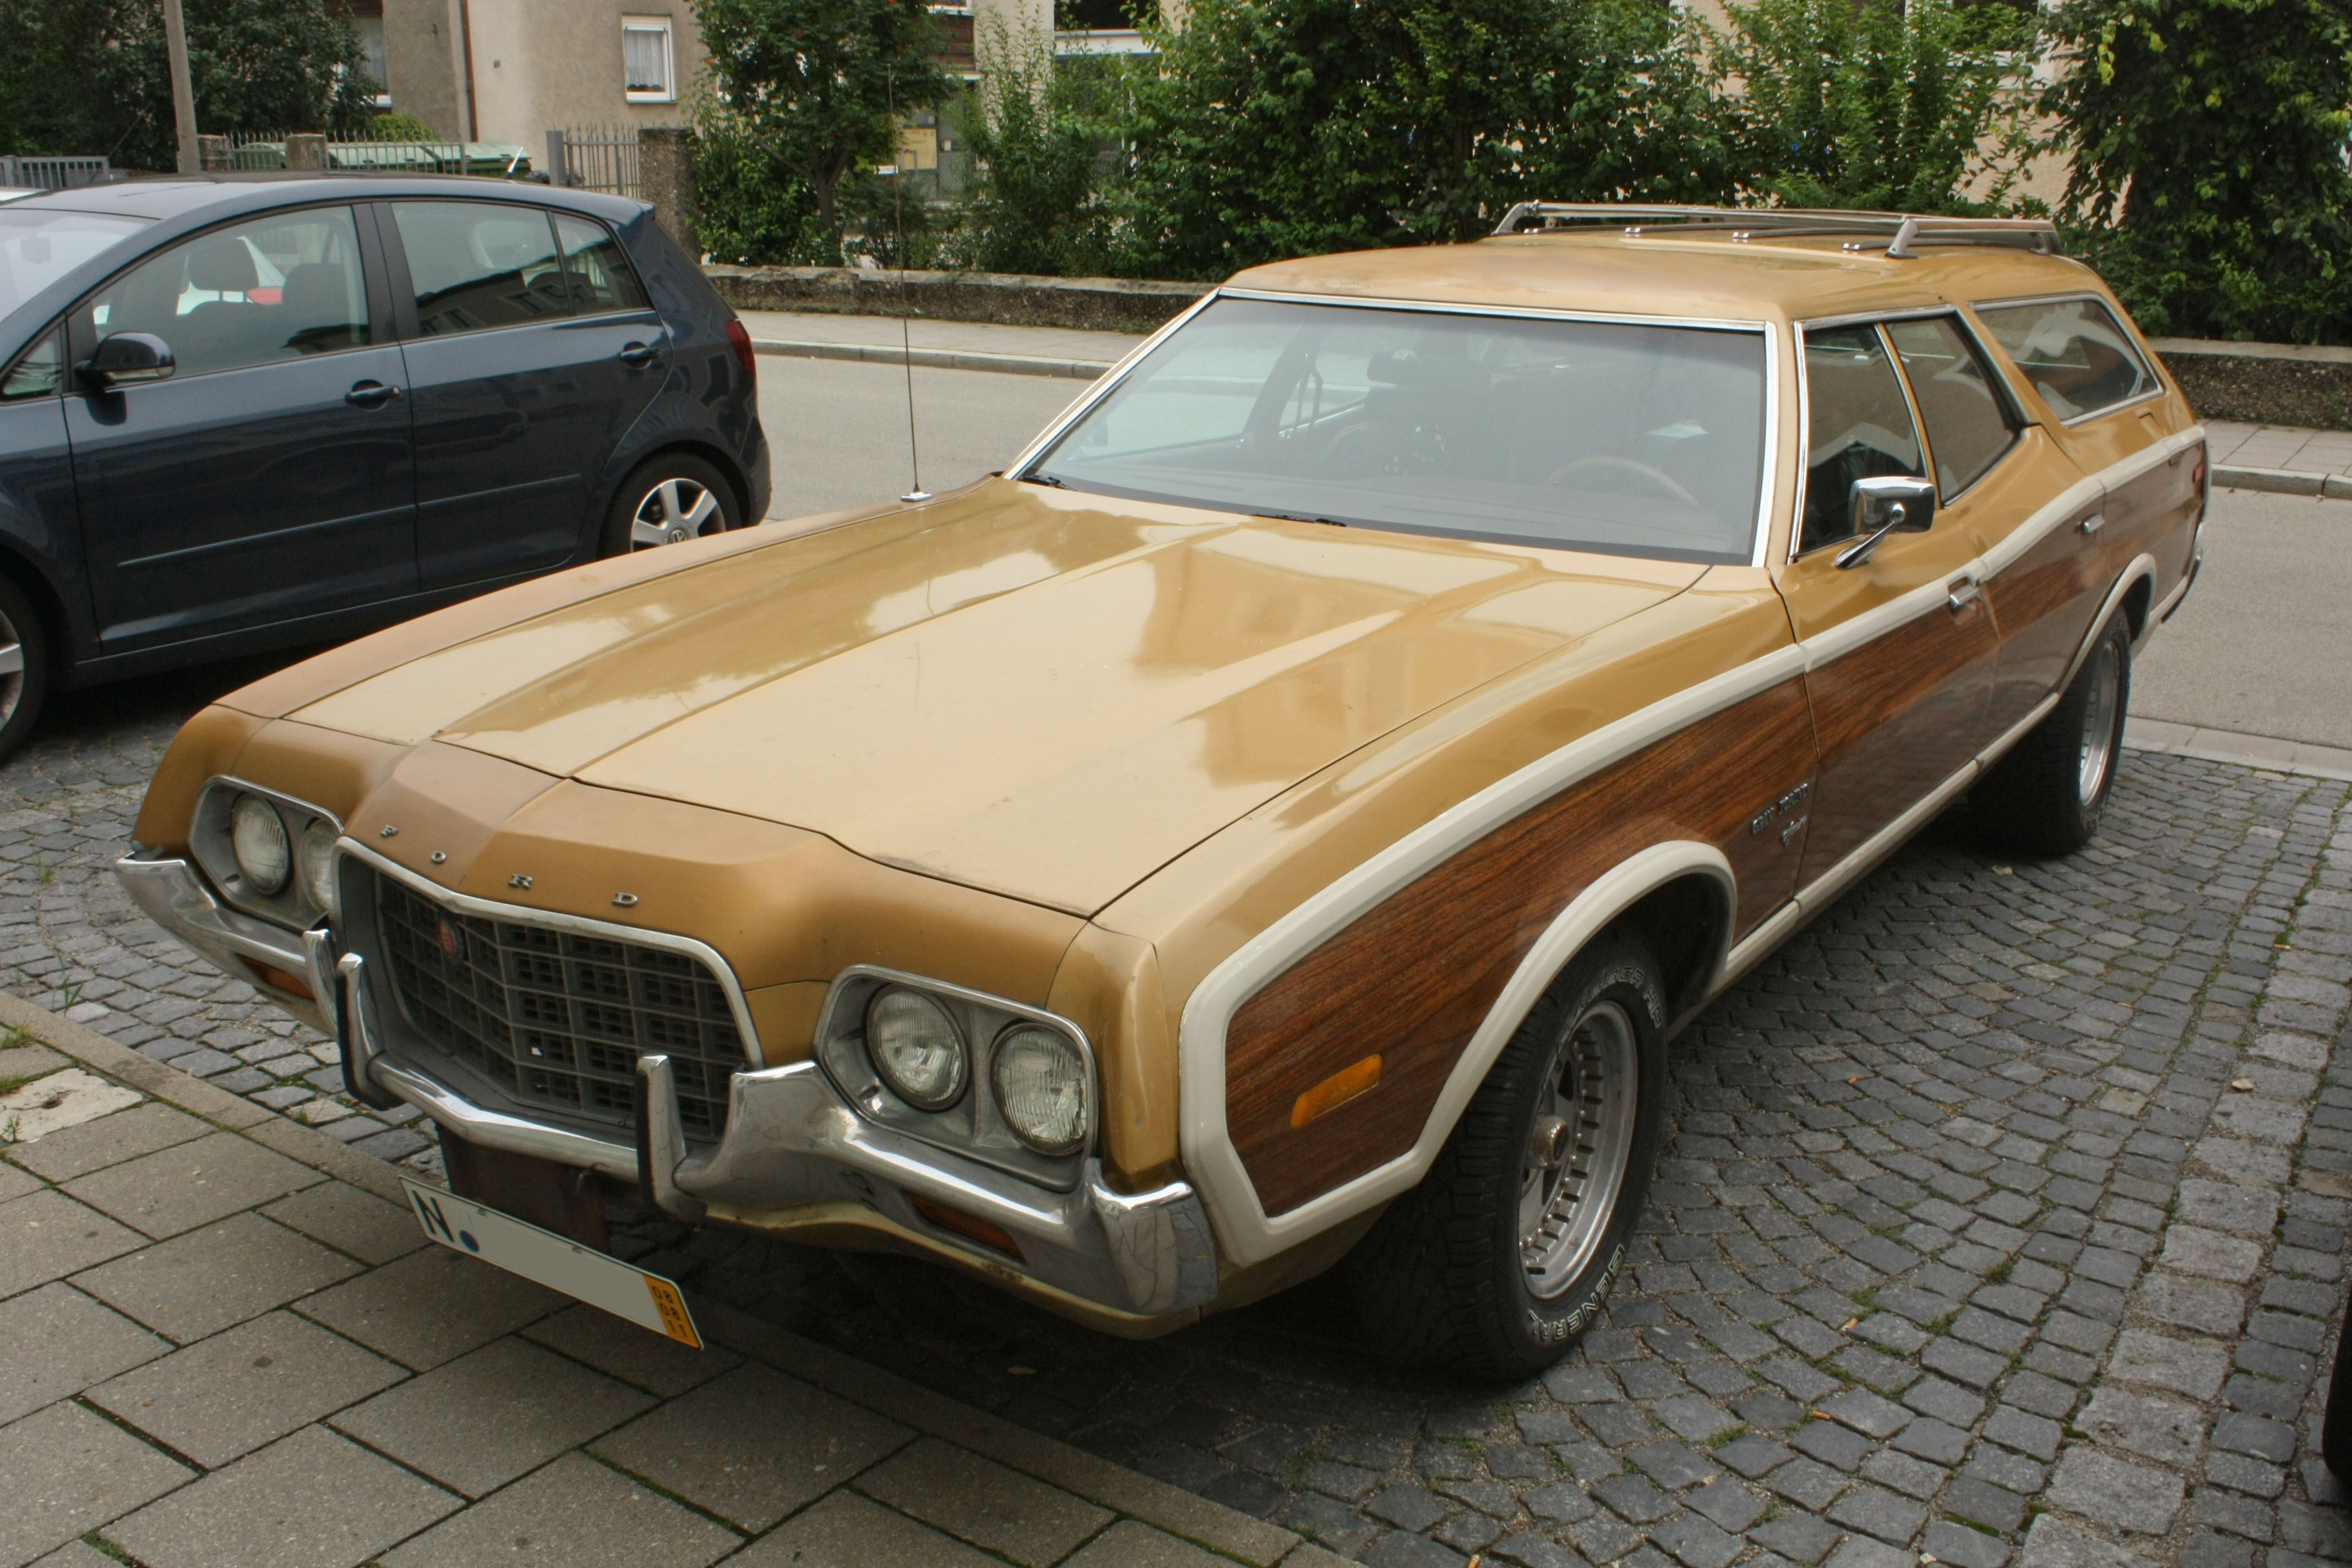 1972 mercury montego n code 429 restomod motorcycle custom - 1972 Ford Gran Torino Squire Station Wagon With Non Stock Wheels